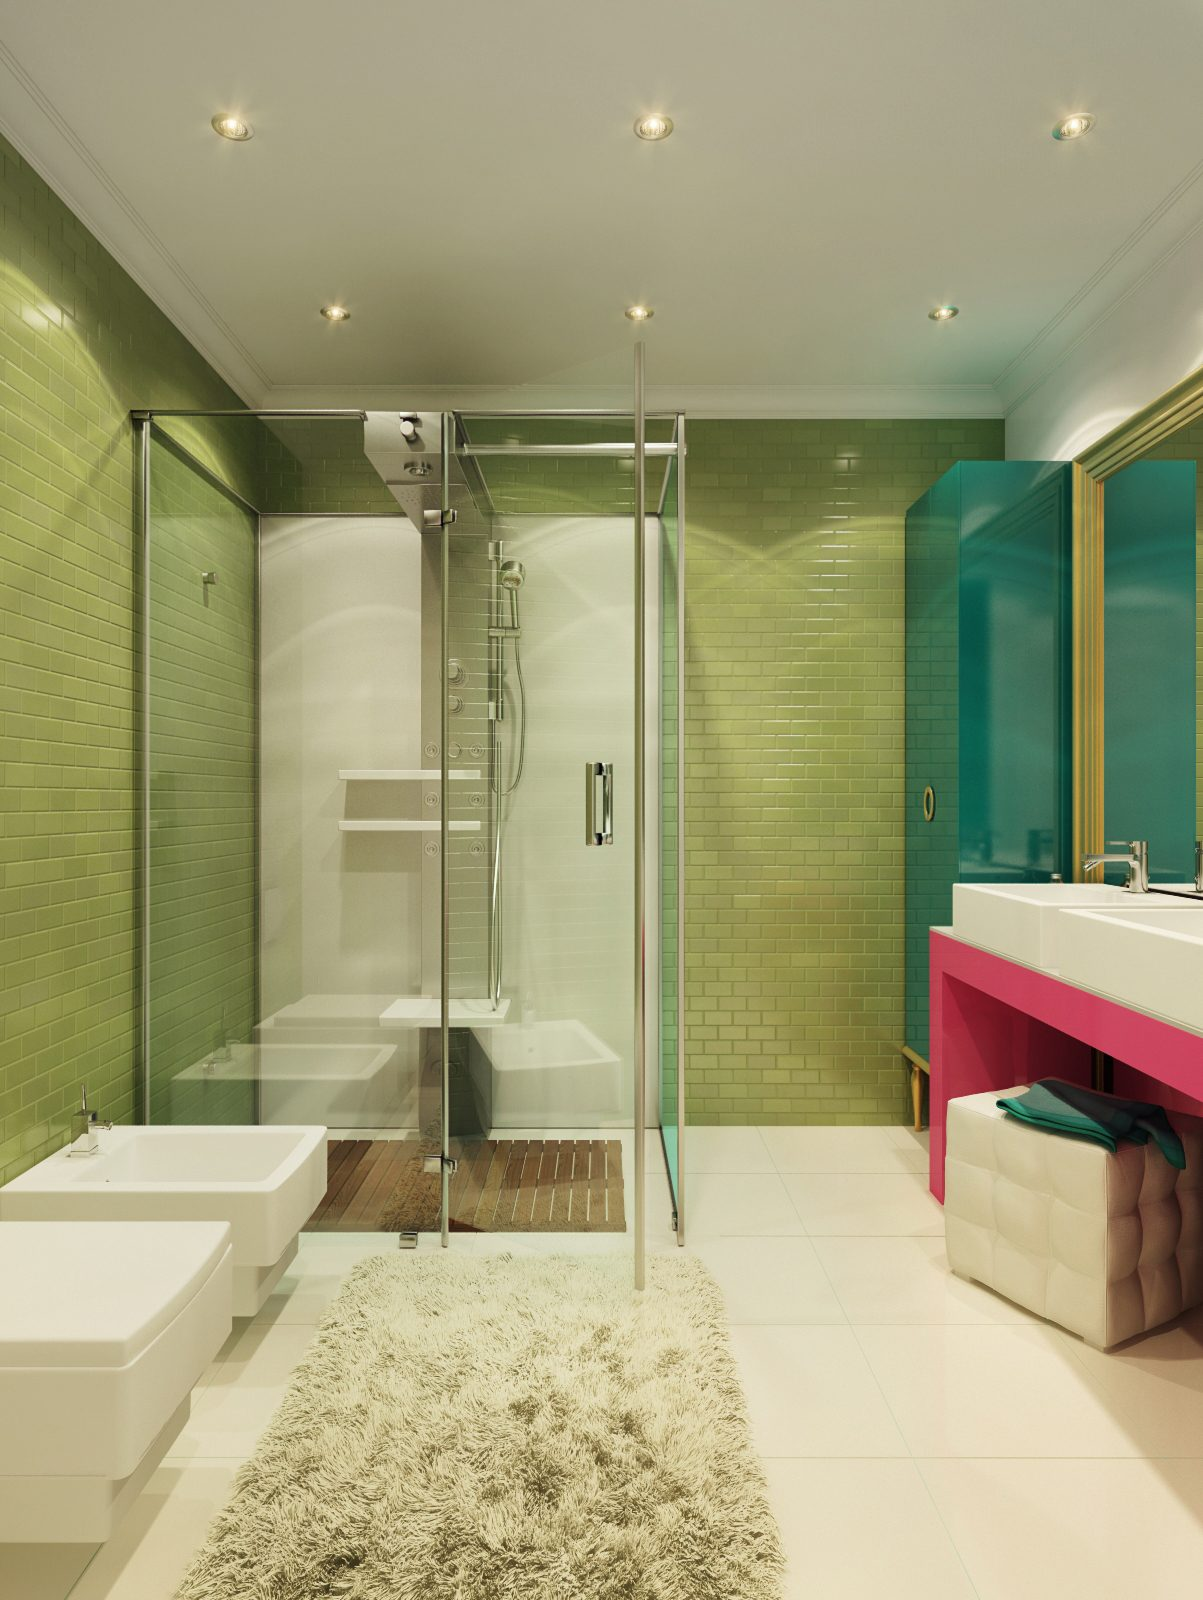 Best ideas to create simple bathroom designs with variety for Simple bathroom designs